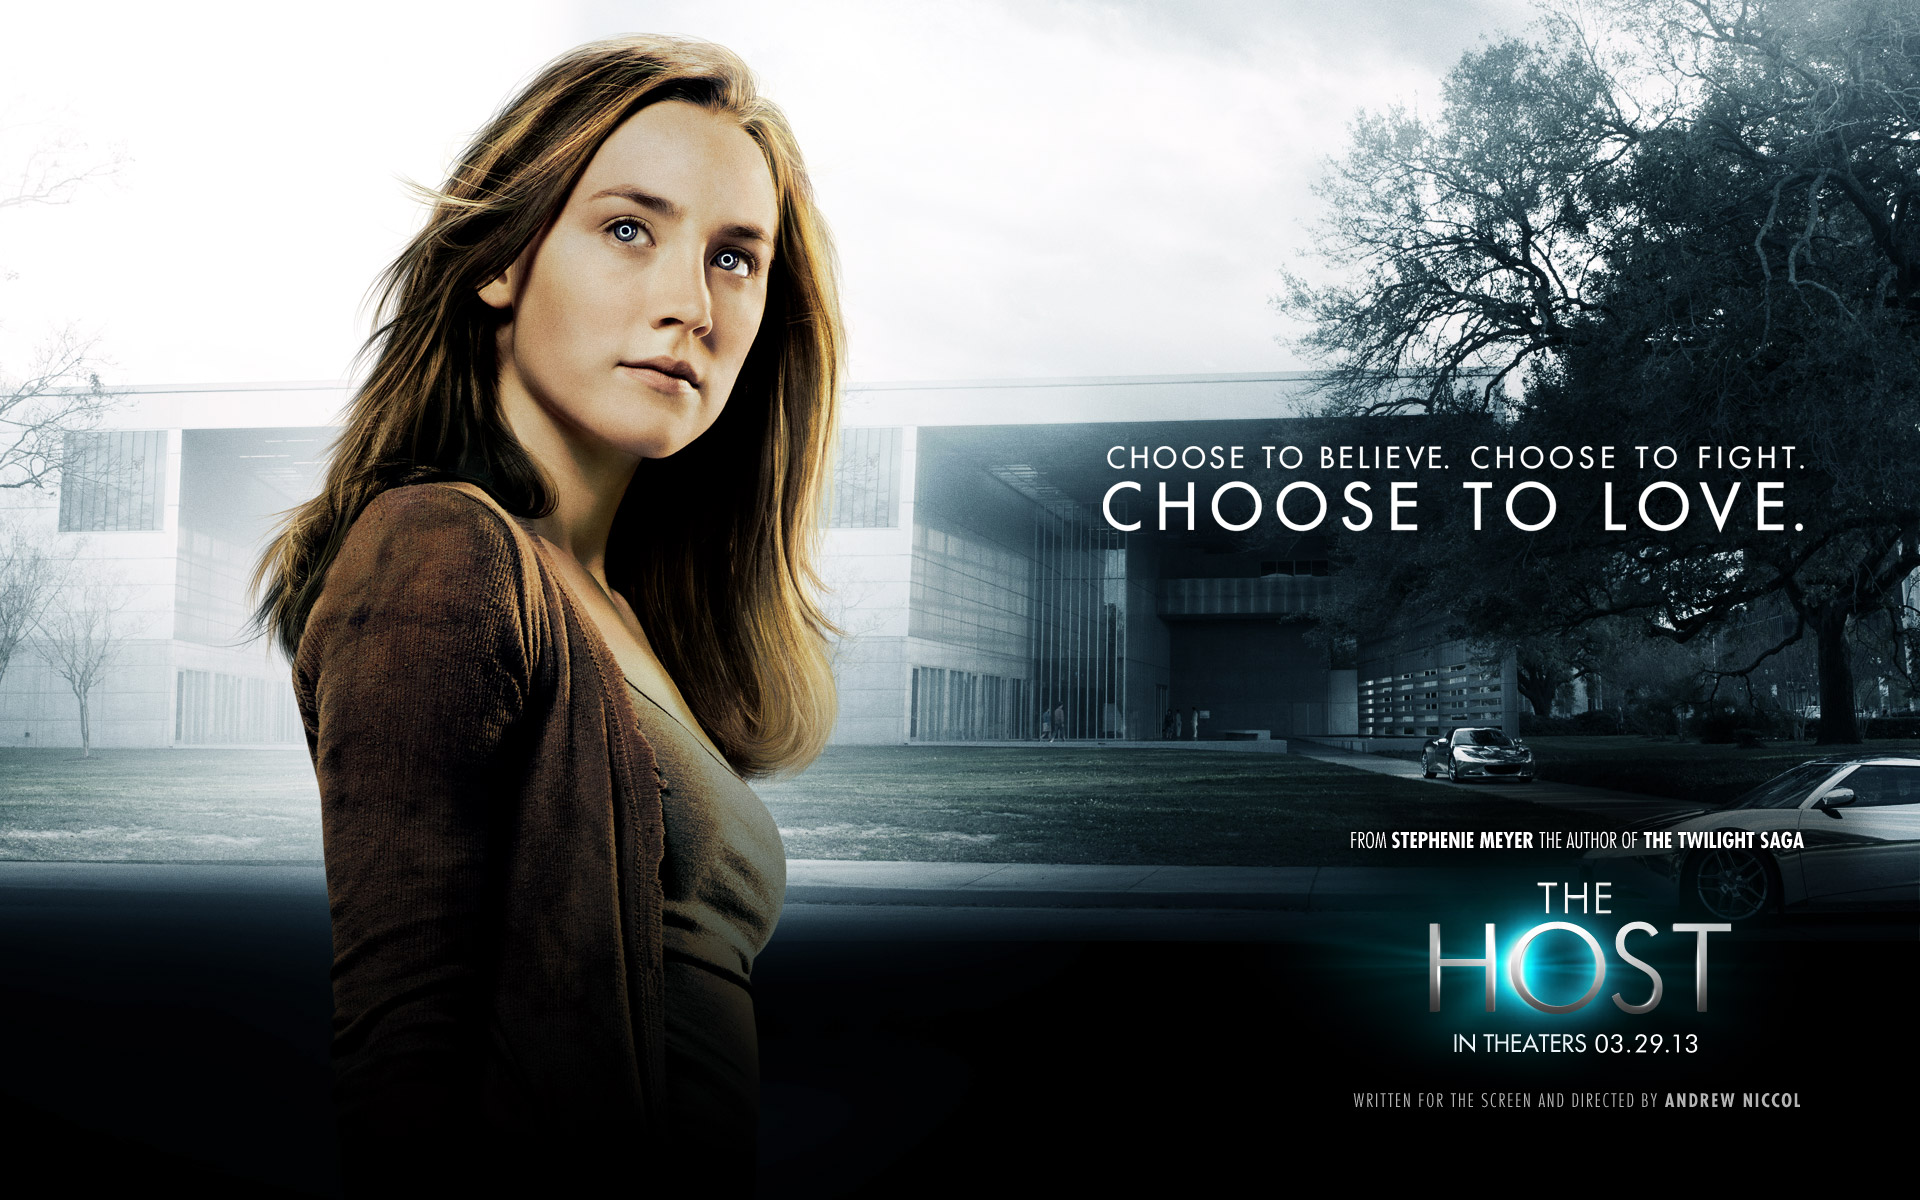 The Host wallpaper - Andrew Niccol featuring Saoirse Ronan